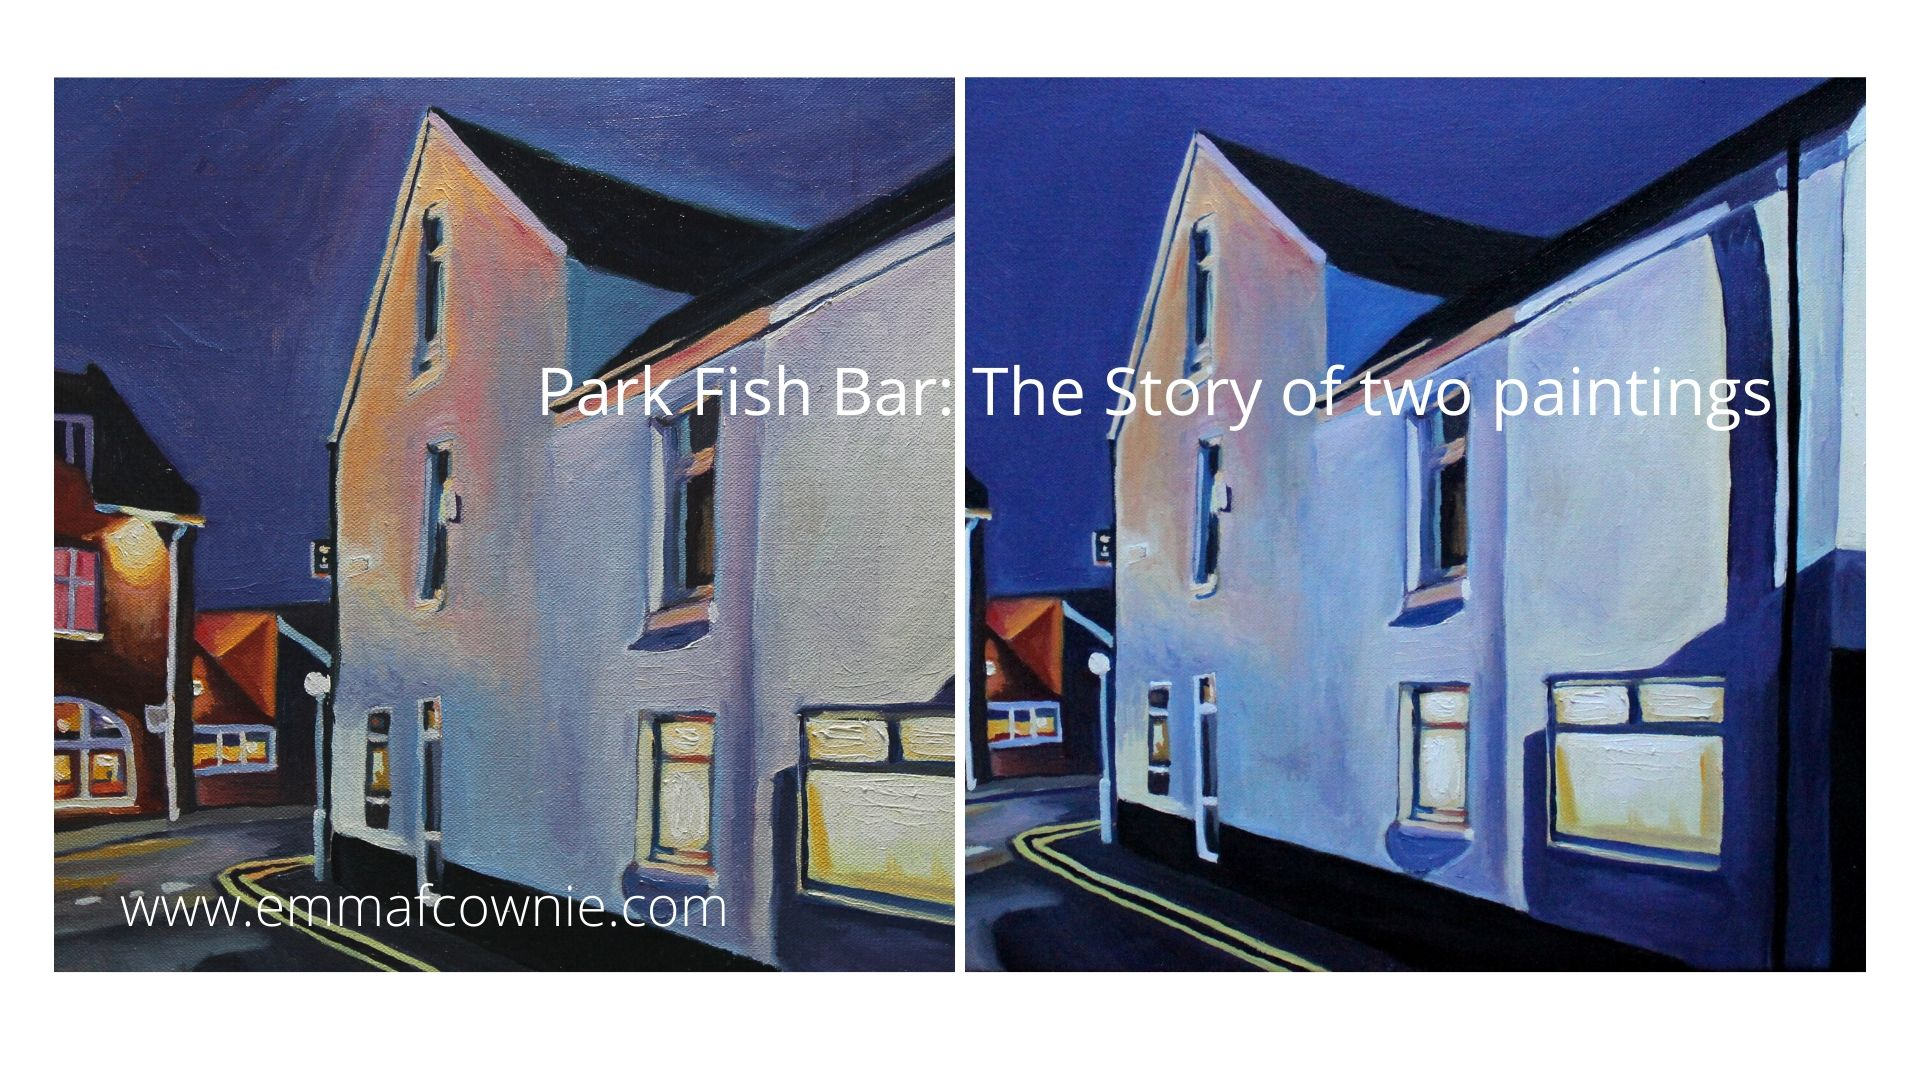 Park Fish Bar: The Story of two Paintings